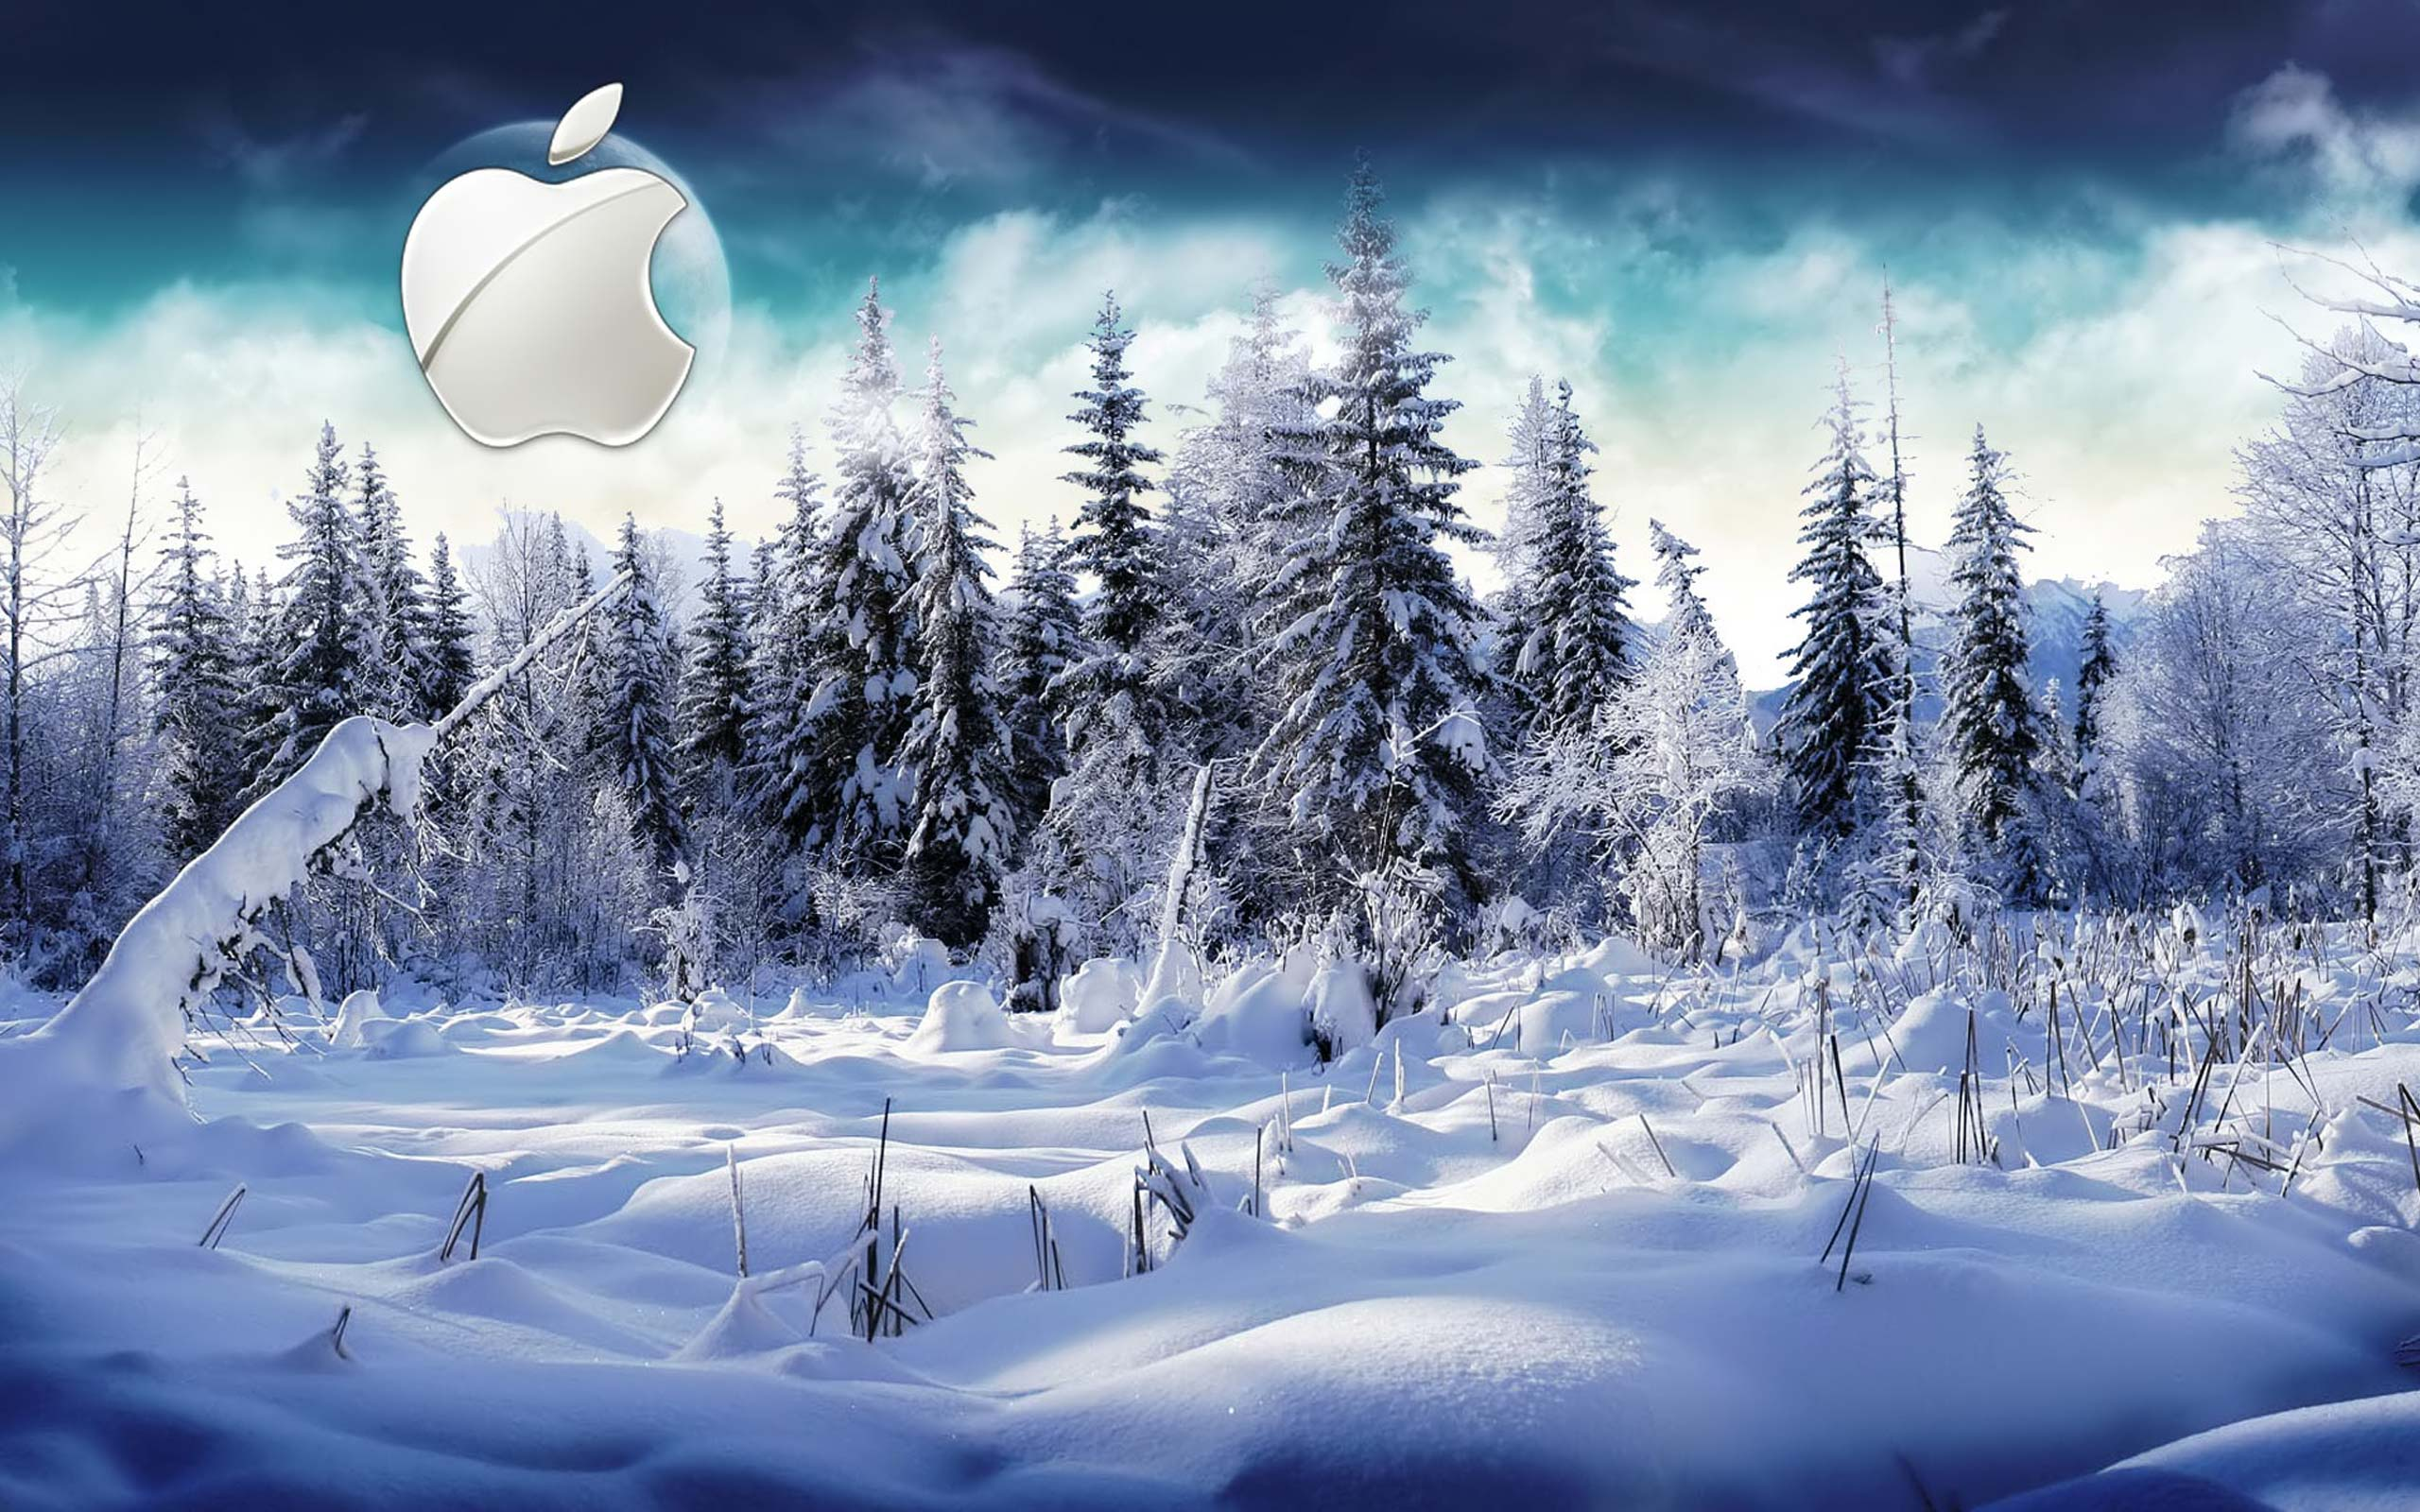 Desktop Wallpaper Gallery Computers Winter Apple Mac 2560x1600